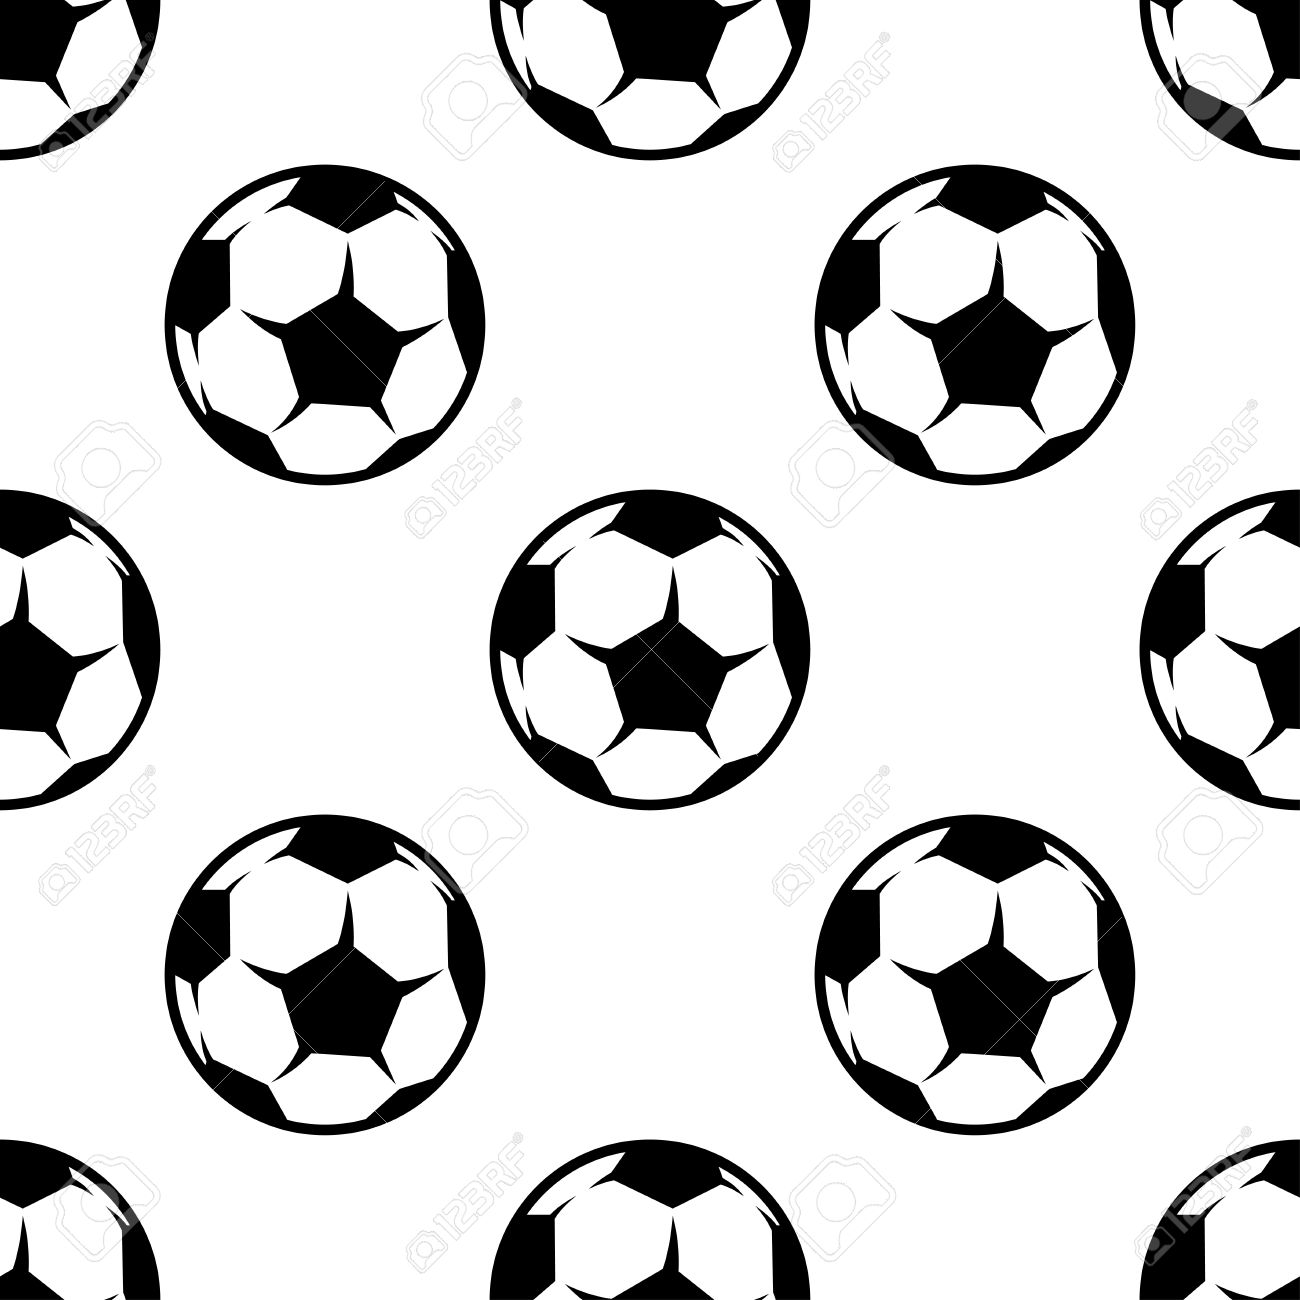 1300x1300 Black And White Football Wallpaper